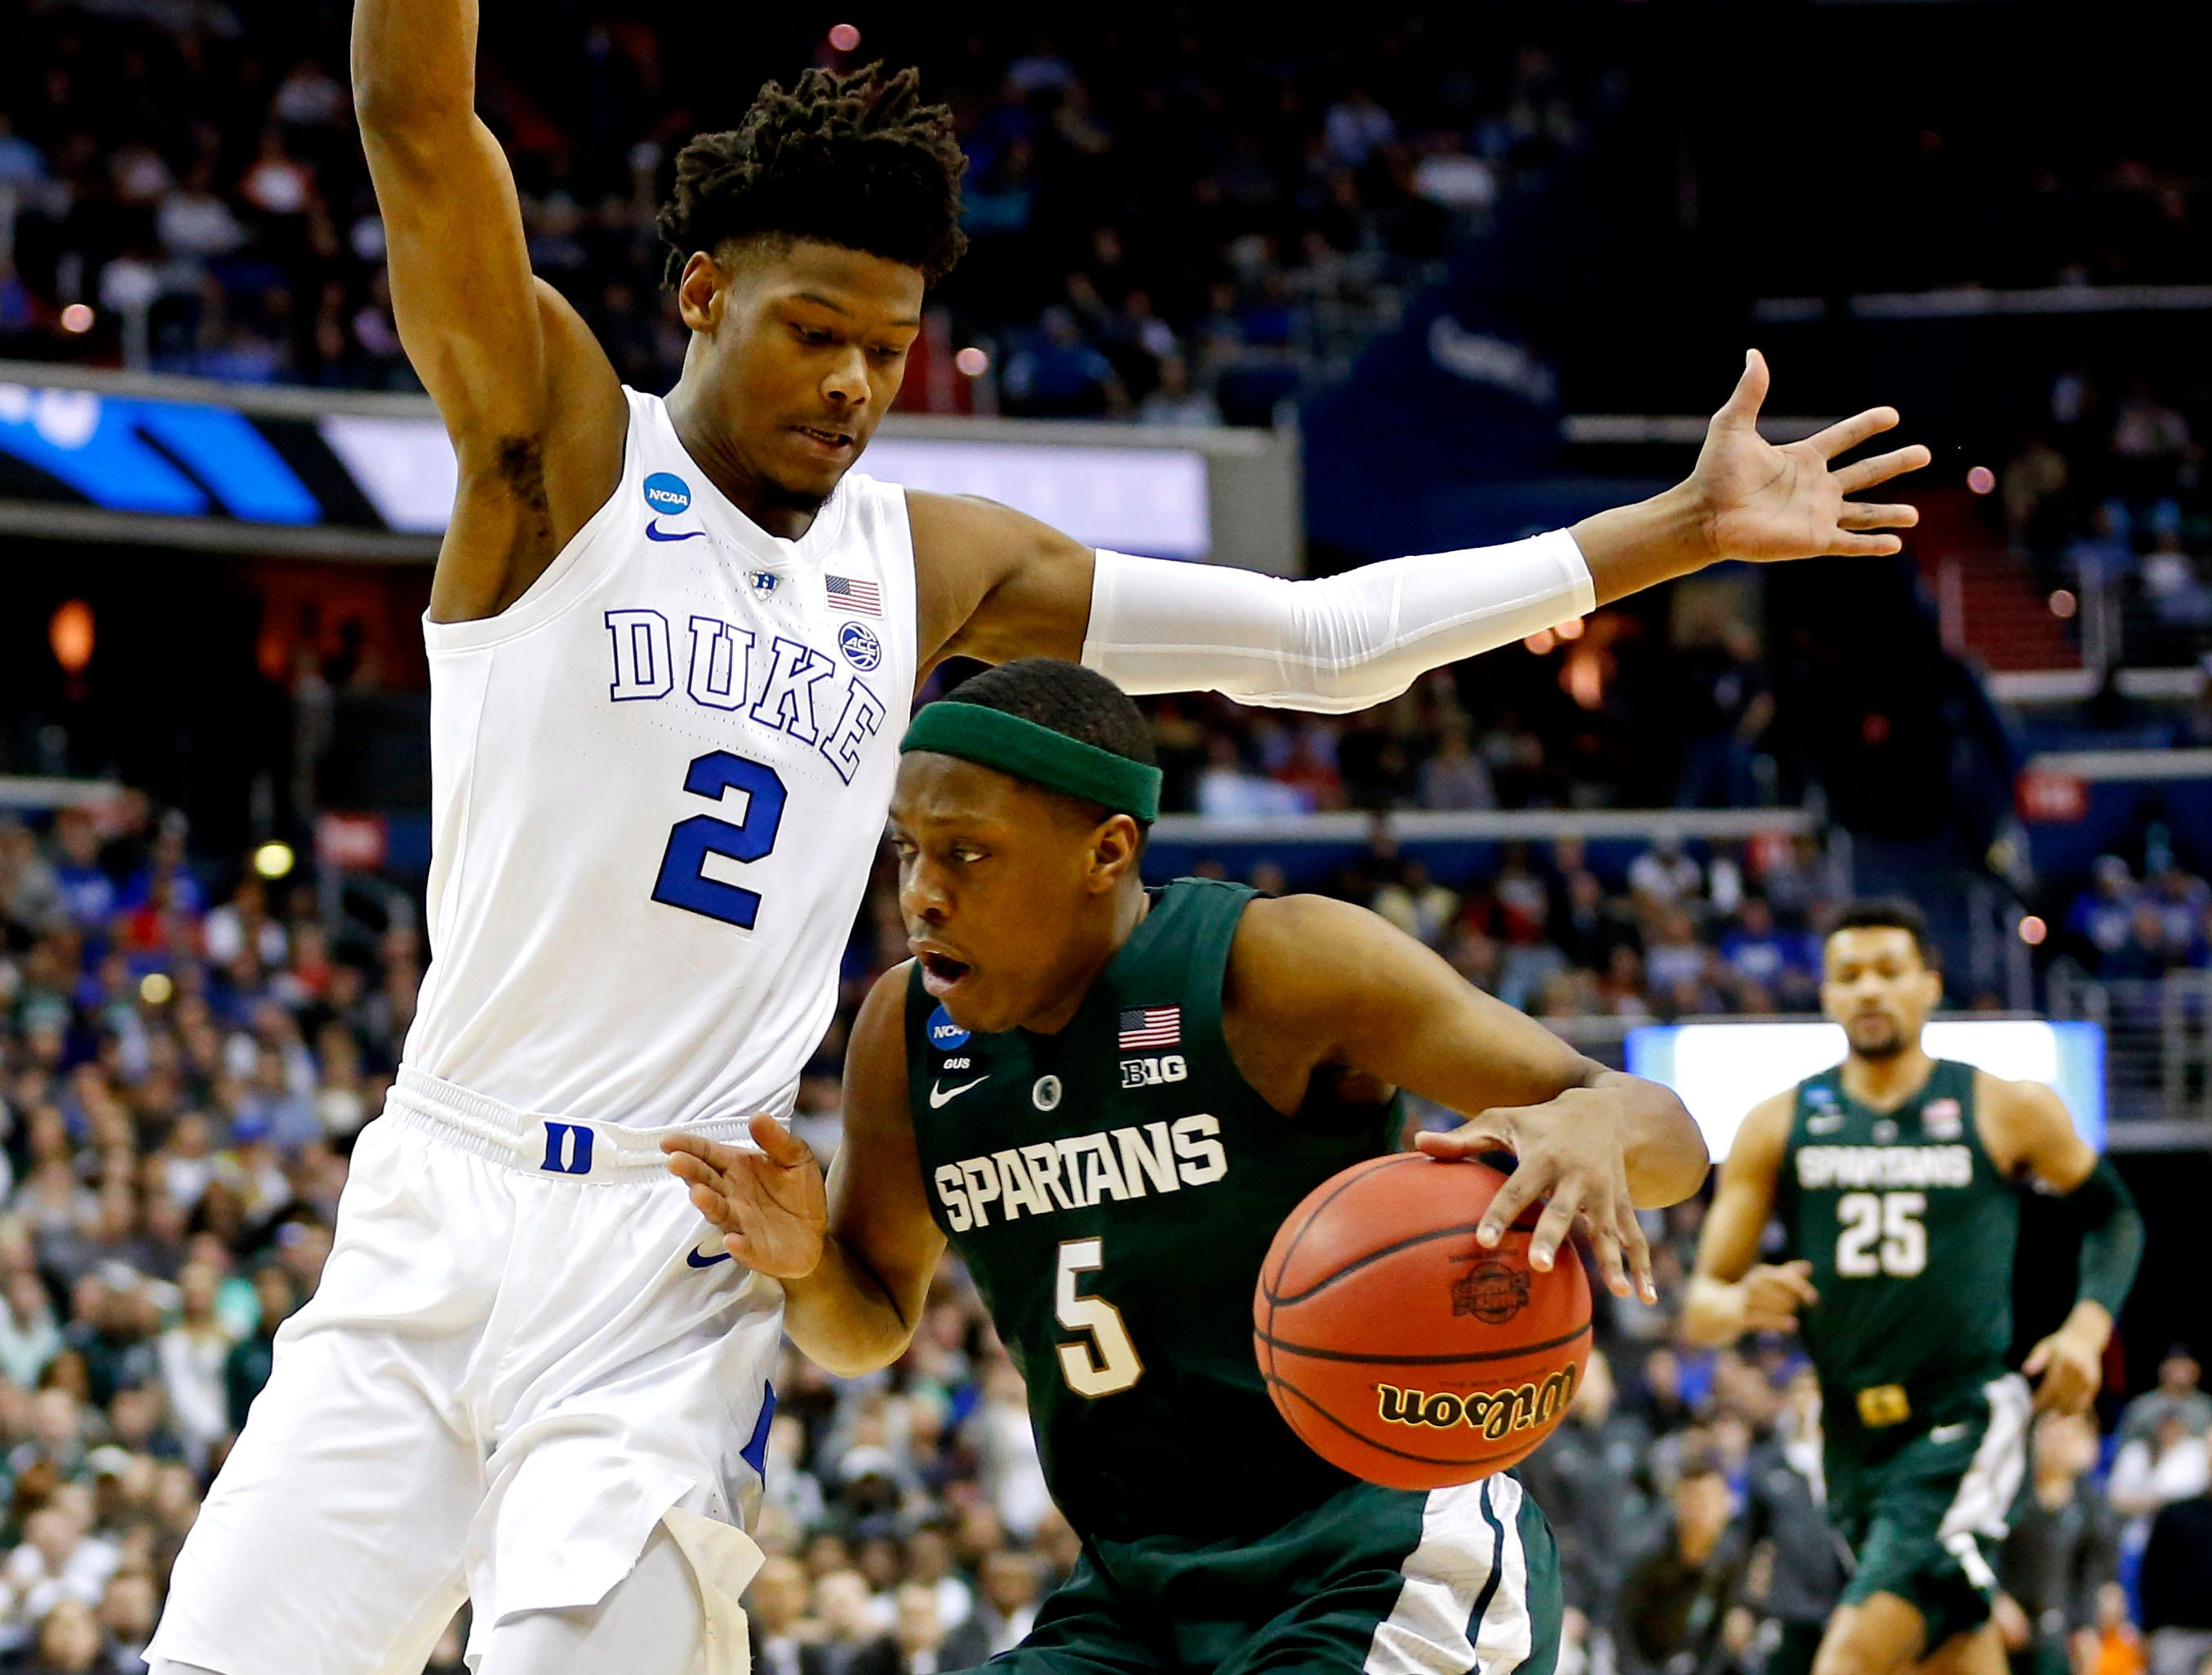 Michigan State Spartans guard Cassius Winston (5) drives to the basket against Duke Blue Devils forward Cam Reddish (2) during the first half in the championship game of the east regional of the 2019 NCAA Tournament at Capital One Arena.